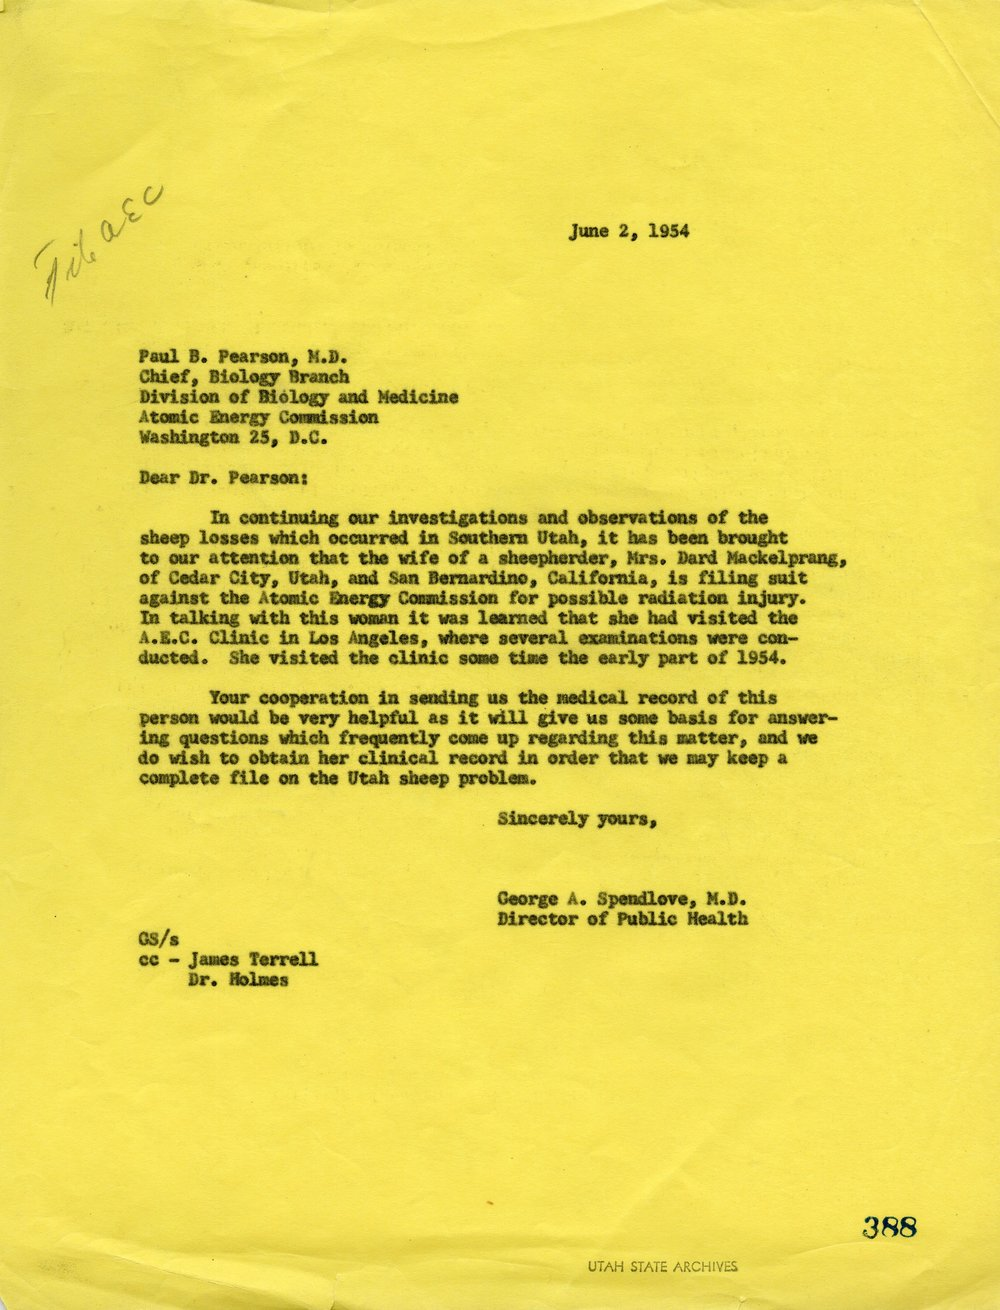 CORRESPONDENCE ON PENDING MACKELPRANG LAWSUIT FOR INJURIES SUFFERED FROM ABOVE-GROUND NUCLEAR TESTING - SERIES 11571 - SERIES 11571 - PERMISSION OF THE UTAH STATE ARCHIVES AND RECORDS SERVICE.